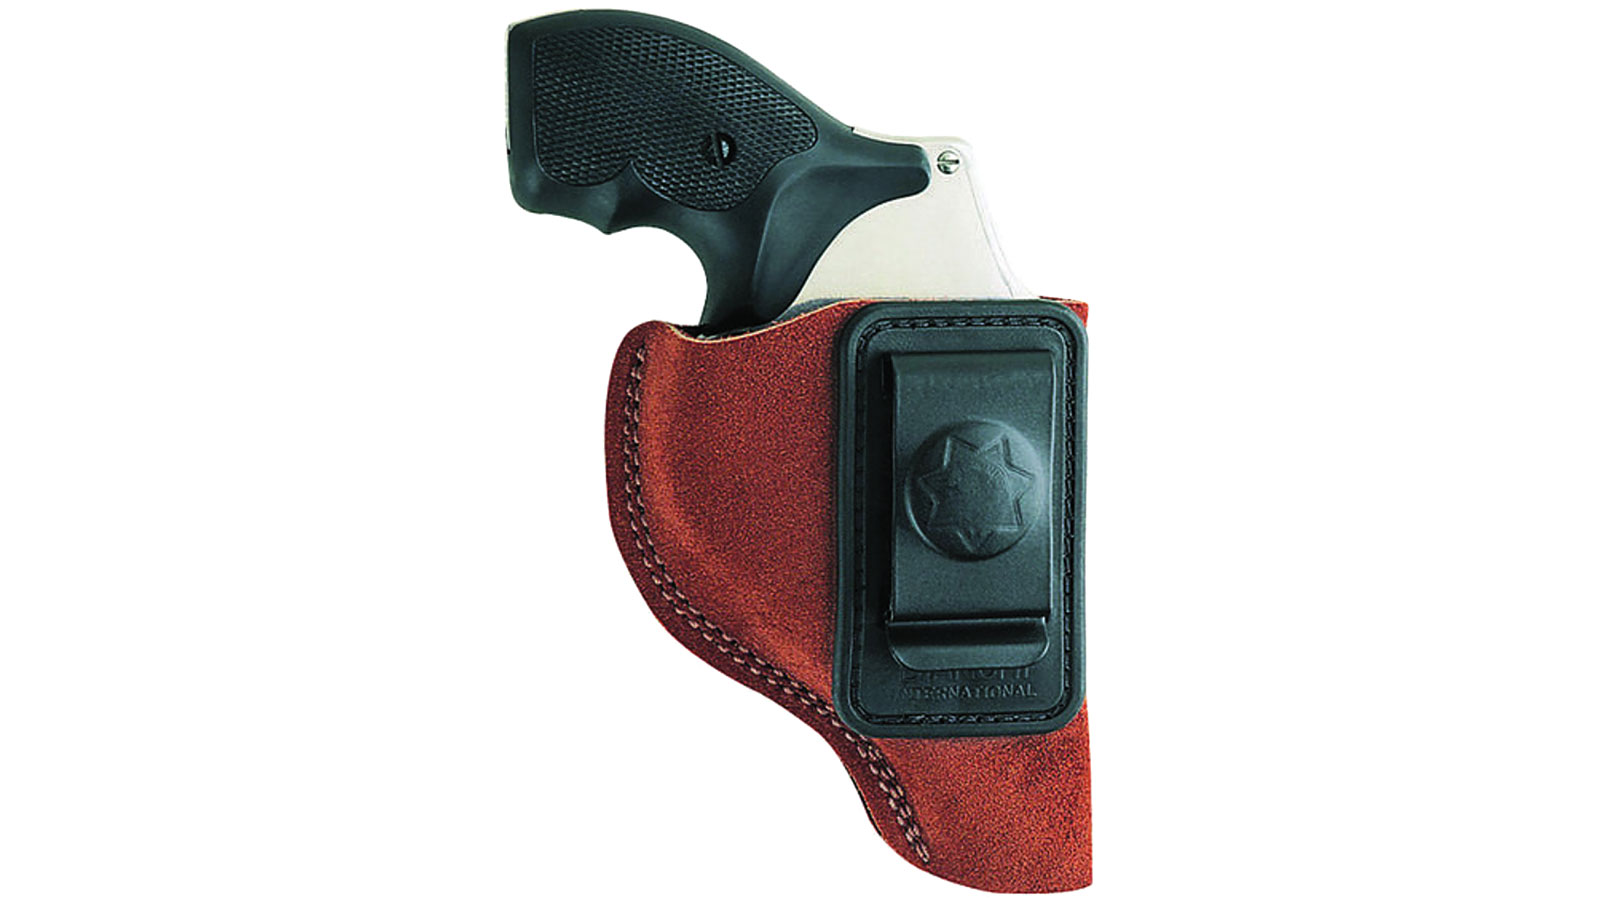 Bianchi 10384 6 Waistband Holster - Holsters & Gun Leather at